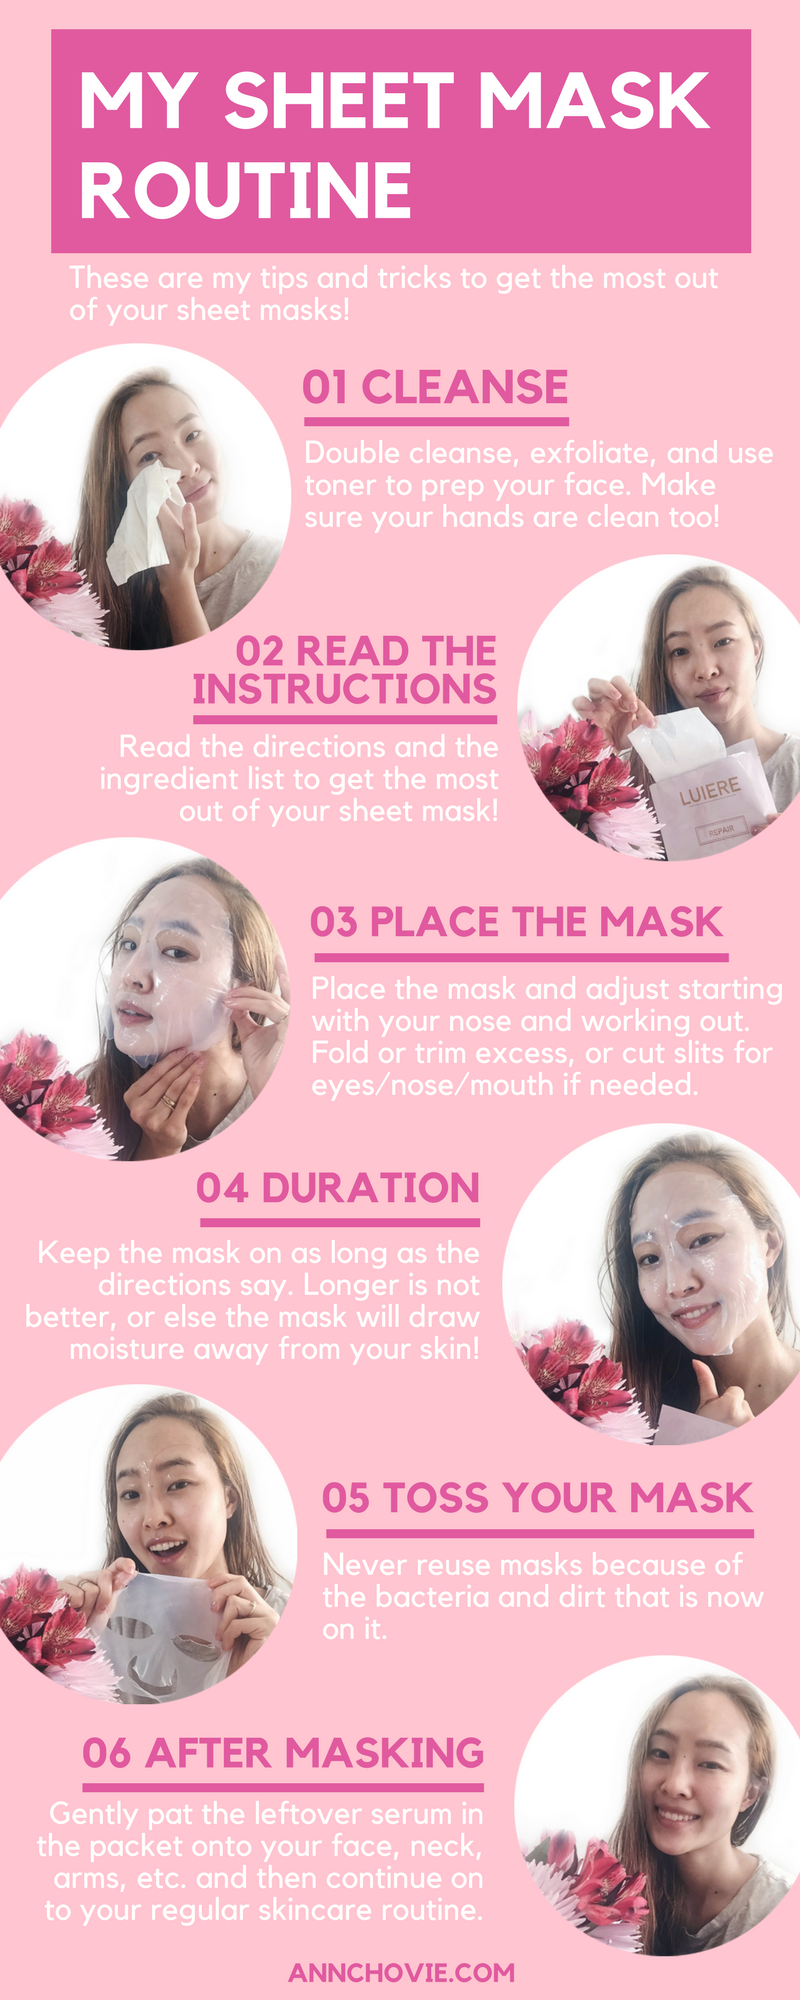 While sheet masks are definitely easy to use, there are common mistakes that even I have committed in the past. I've put together my routine with the dos and don'ts, and tips and tricks to get the most out of your sheet masks. | BEST SHEET MASKS YOU NEED TO TRY | SHEET MASK ROUTINE | BEST FACE MASKS | KOREAN BEAUTY |